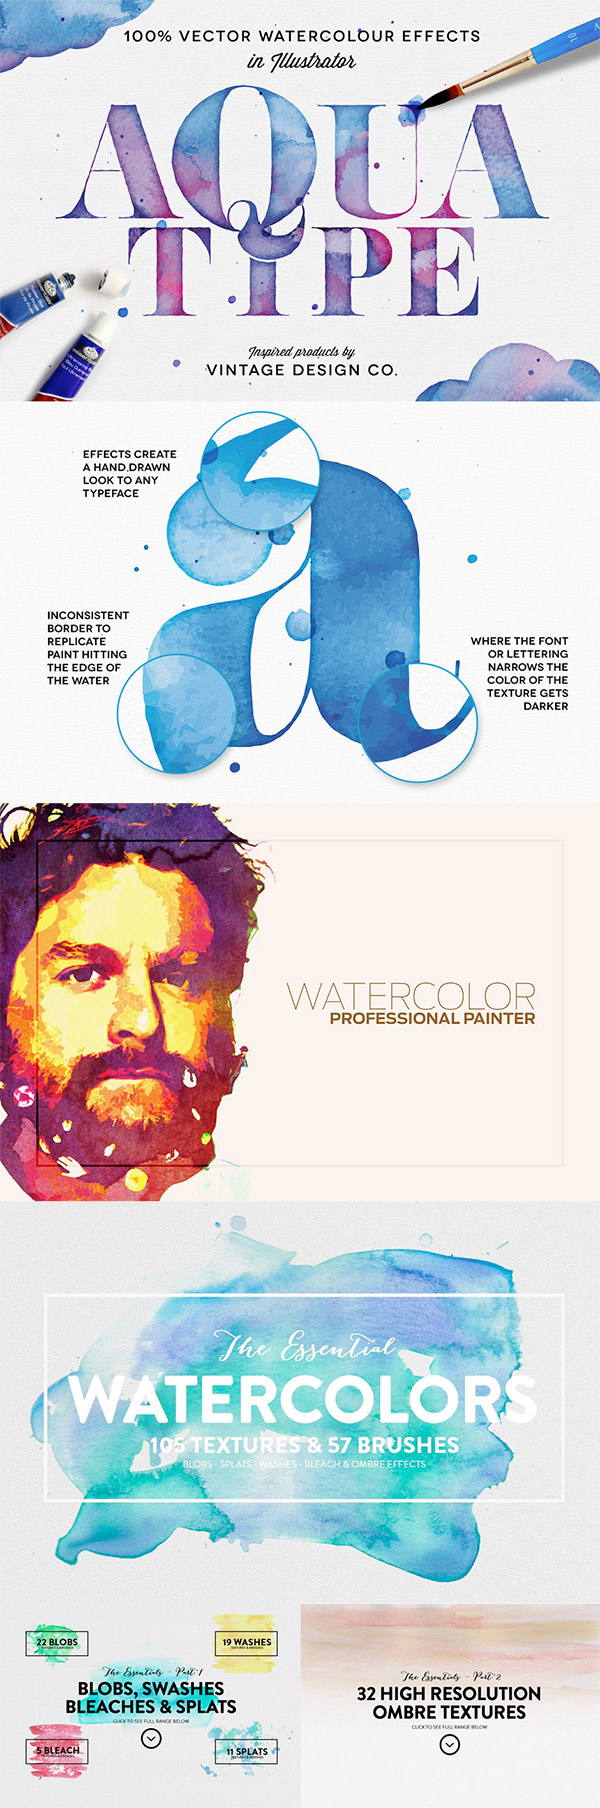 Watercolour effect resources